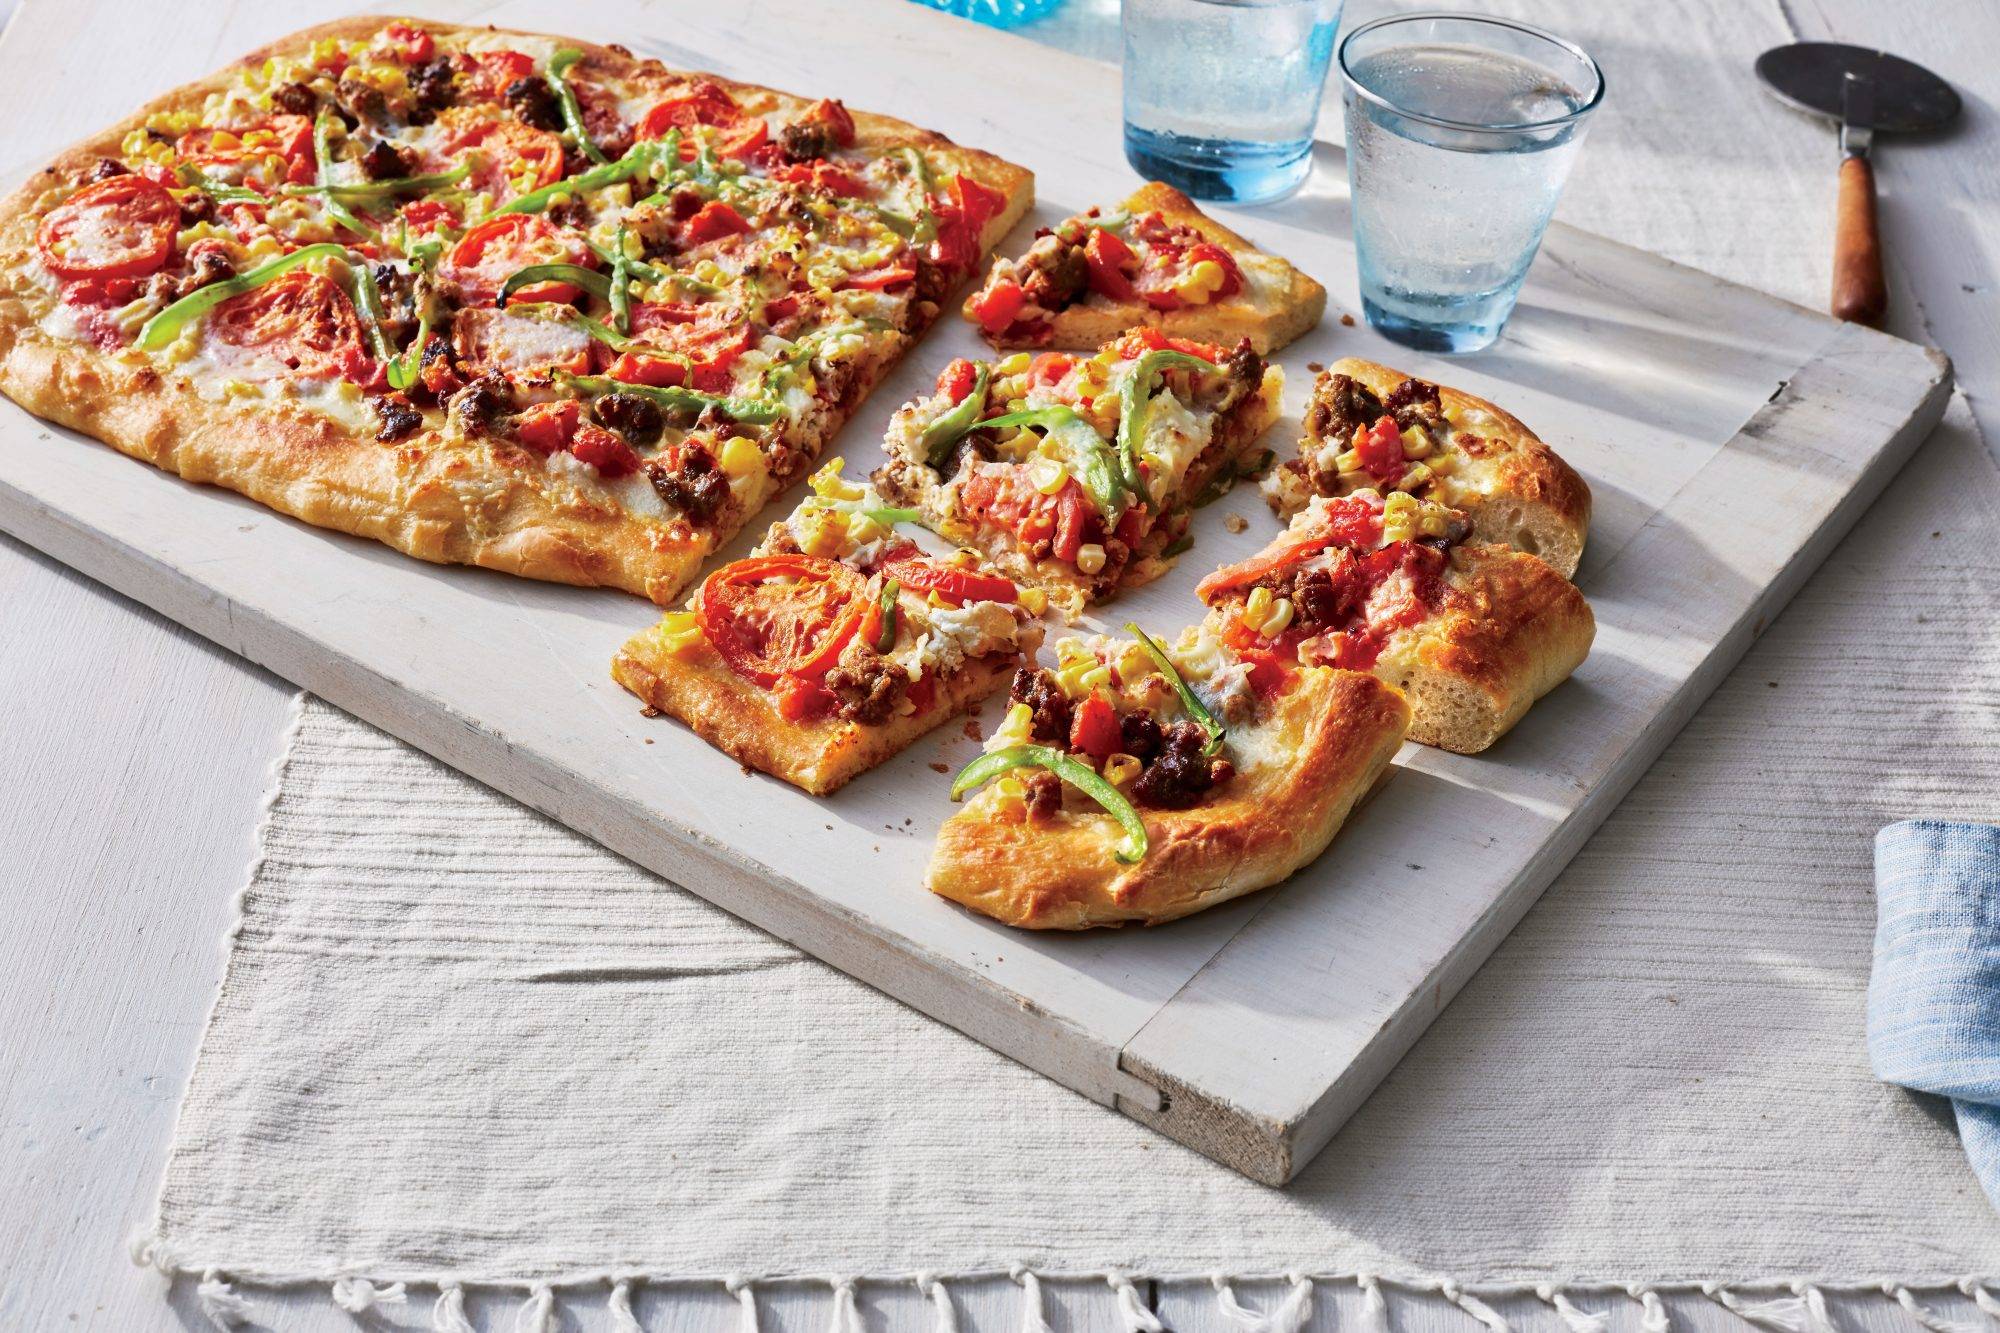 Sheet Pan Pizza with Corn, Tomatoes, and Sausage Recipe